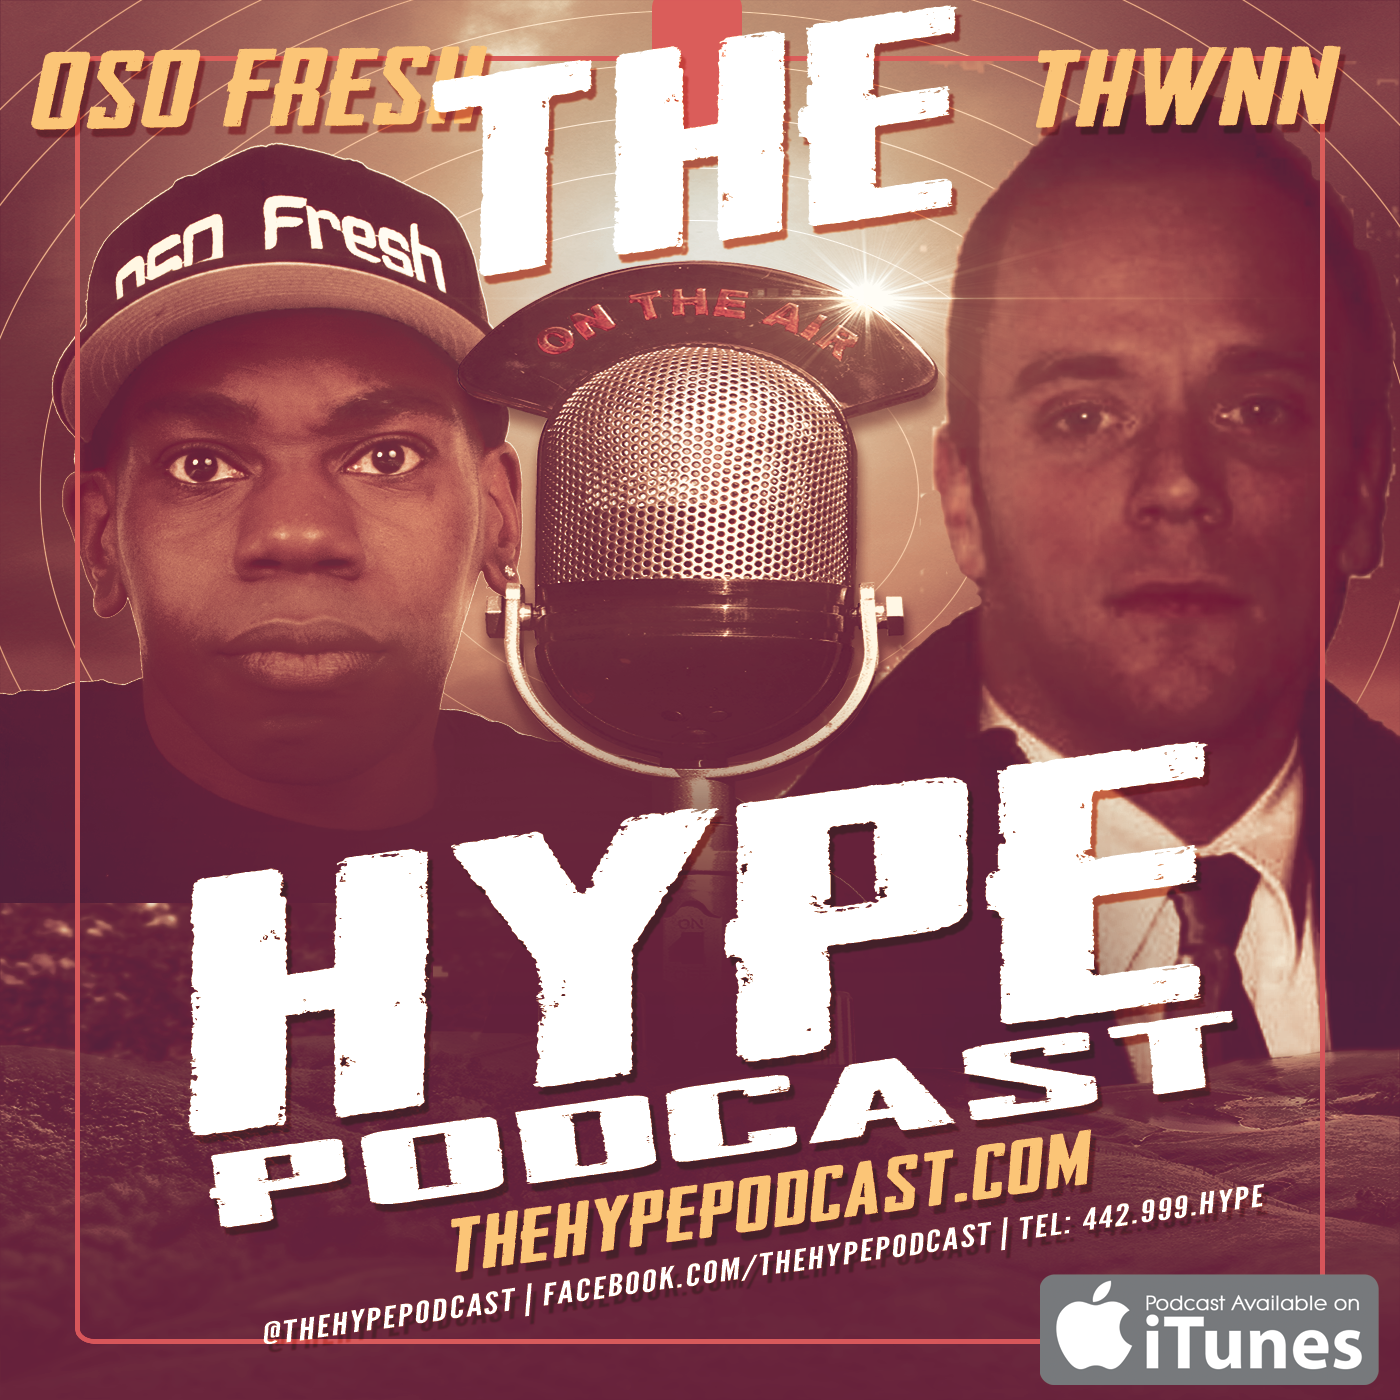 Artwork for The Hype Podcast episode 113